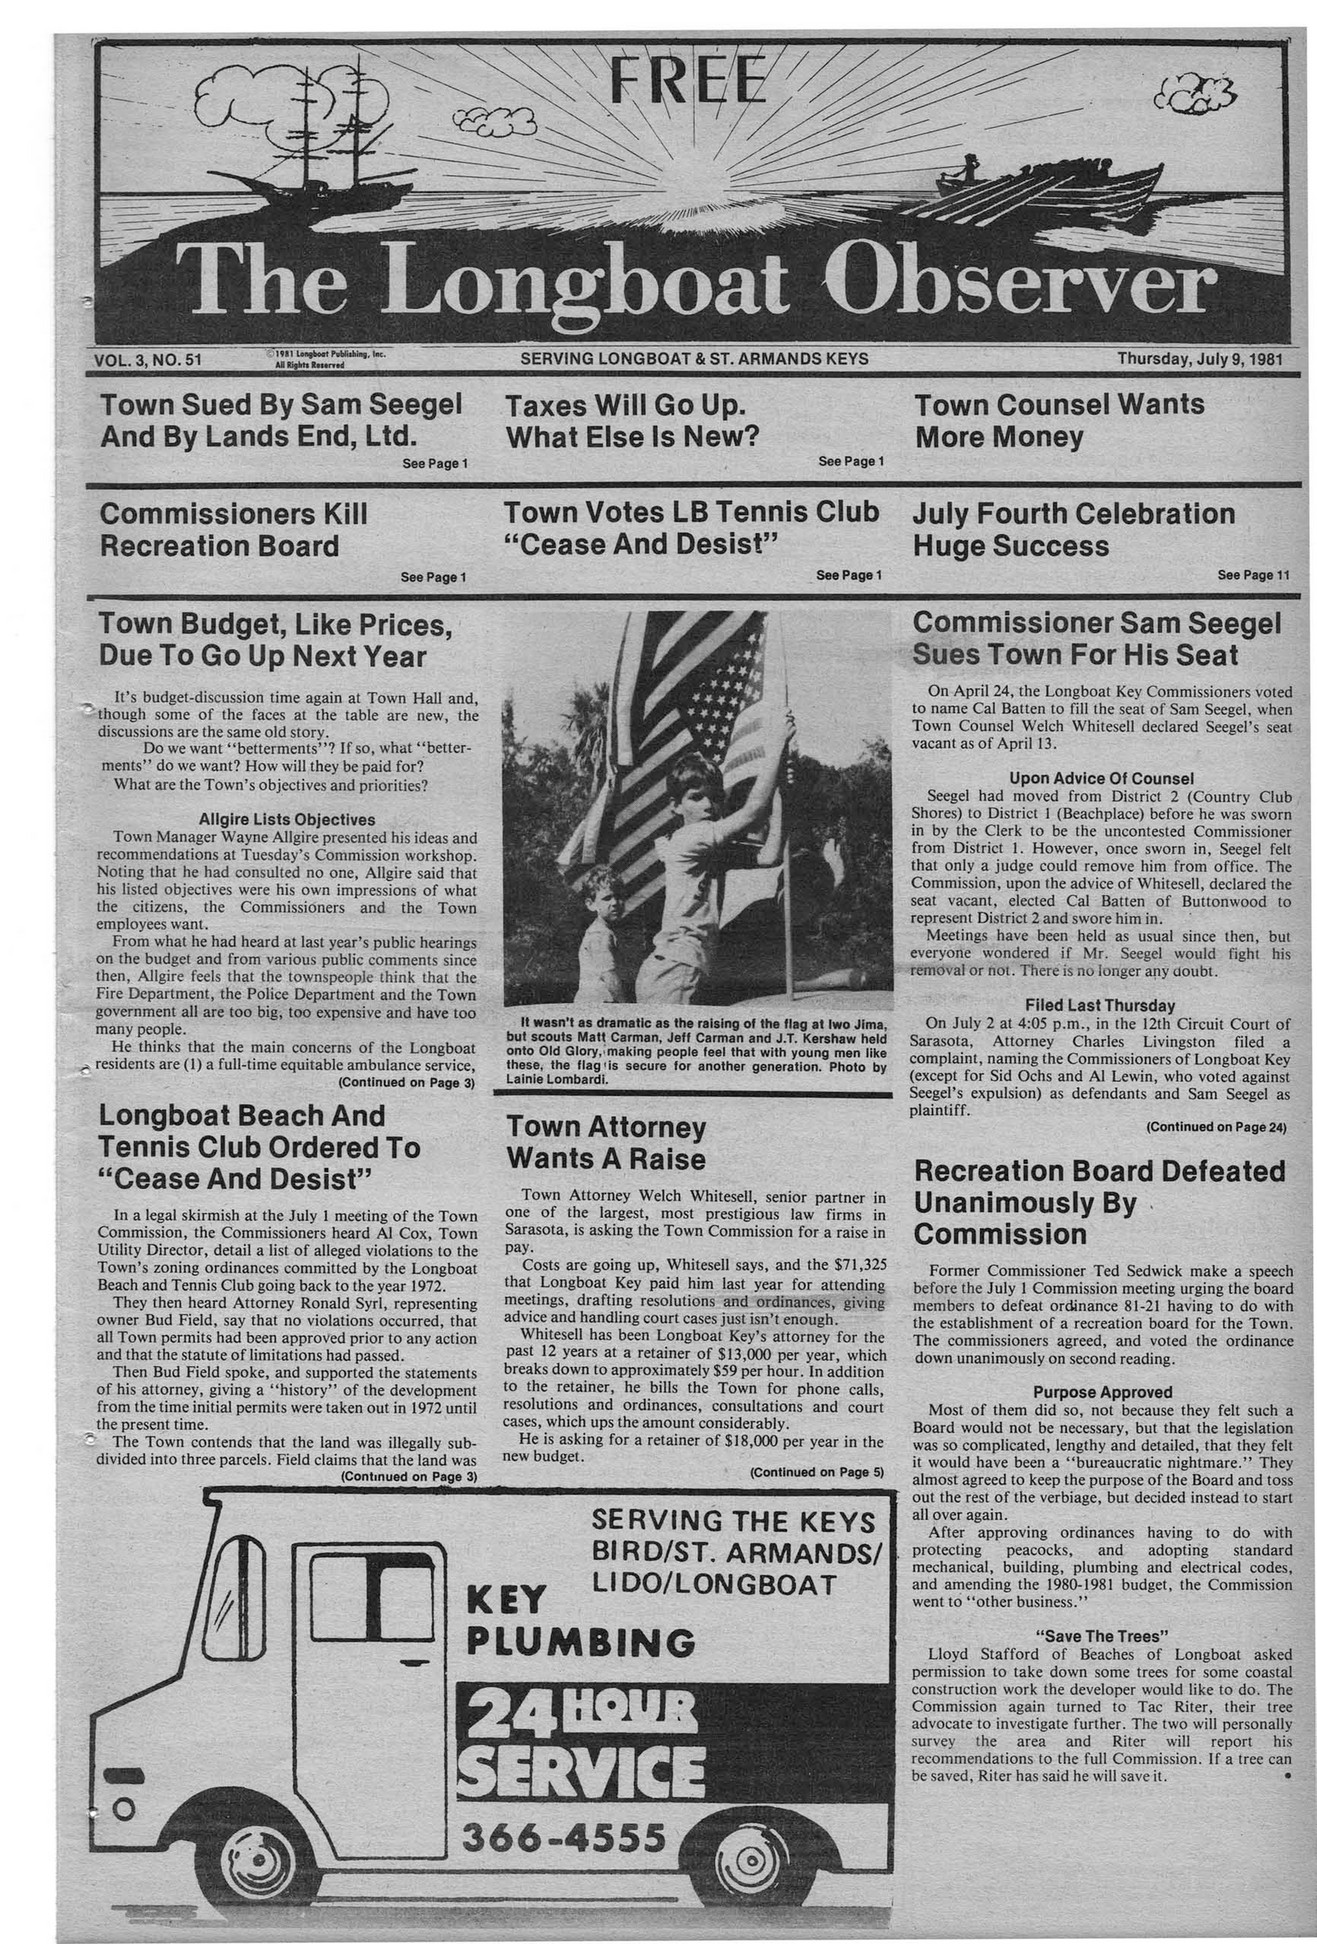 Archives - July 9 1981 - Page 2-3